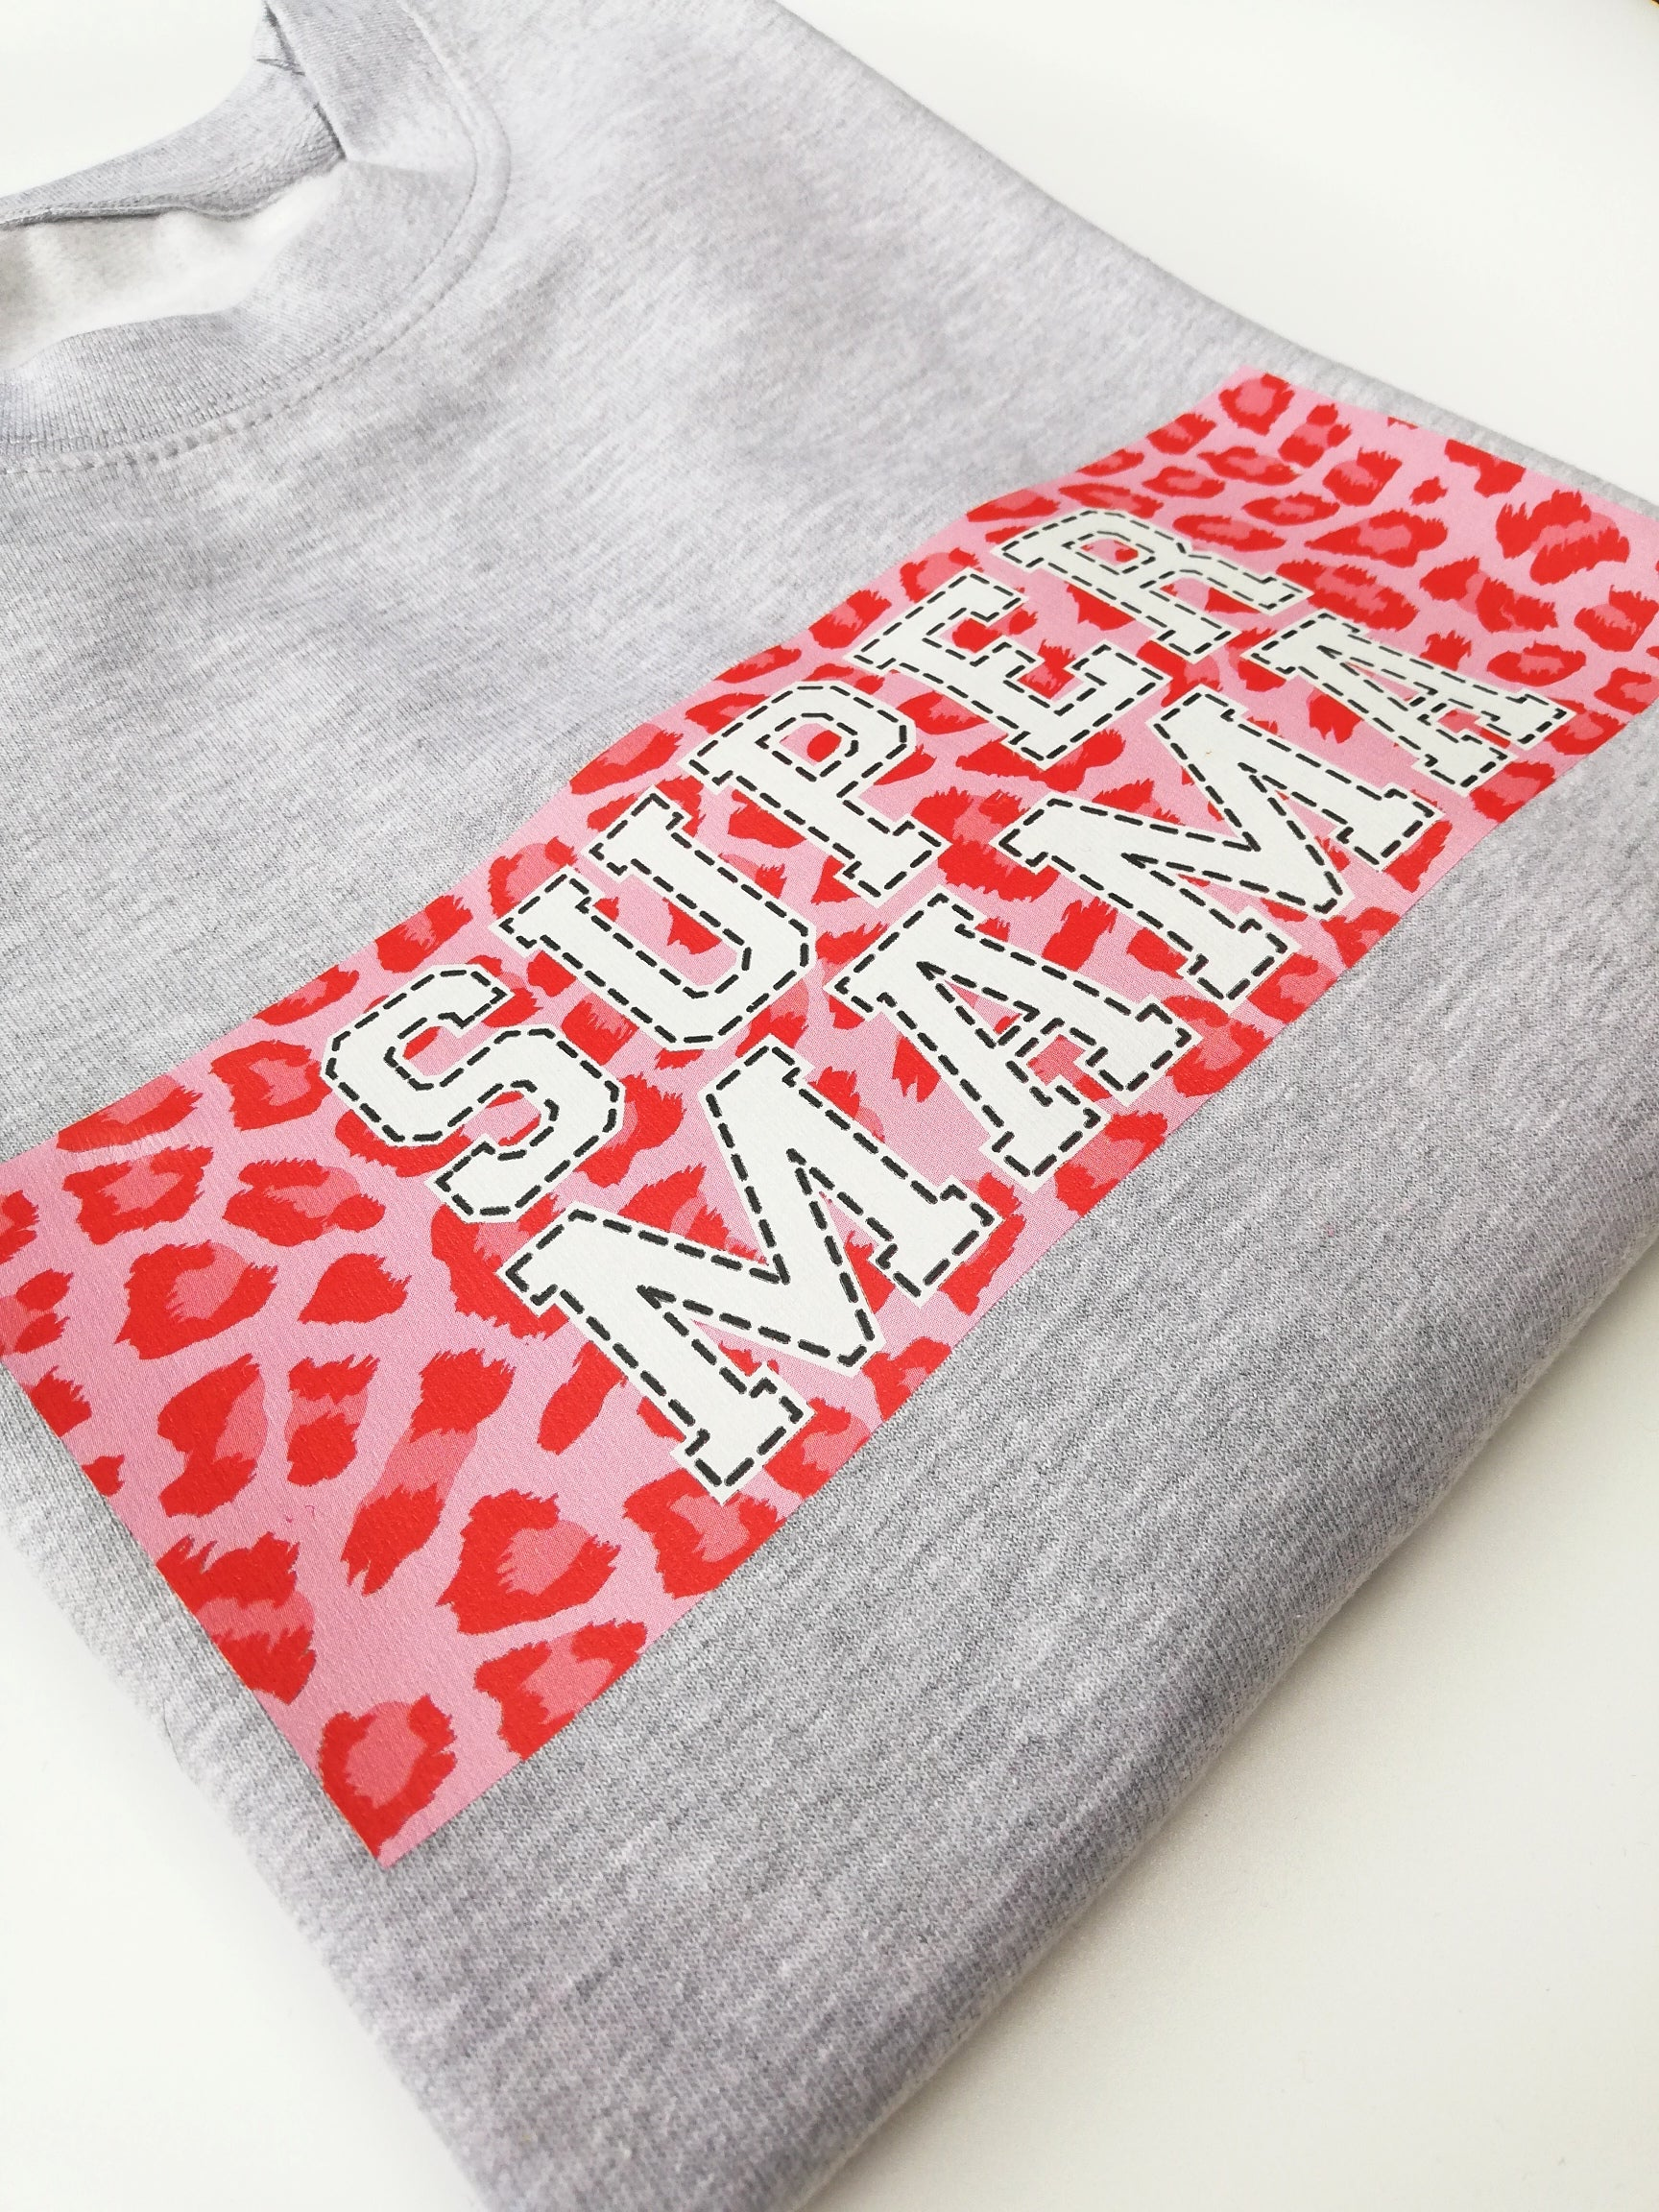 Super Mama Sweatshirt